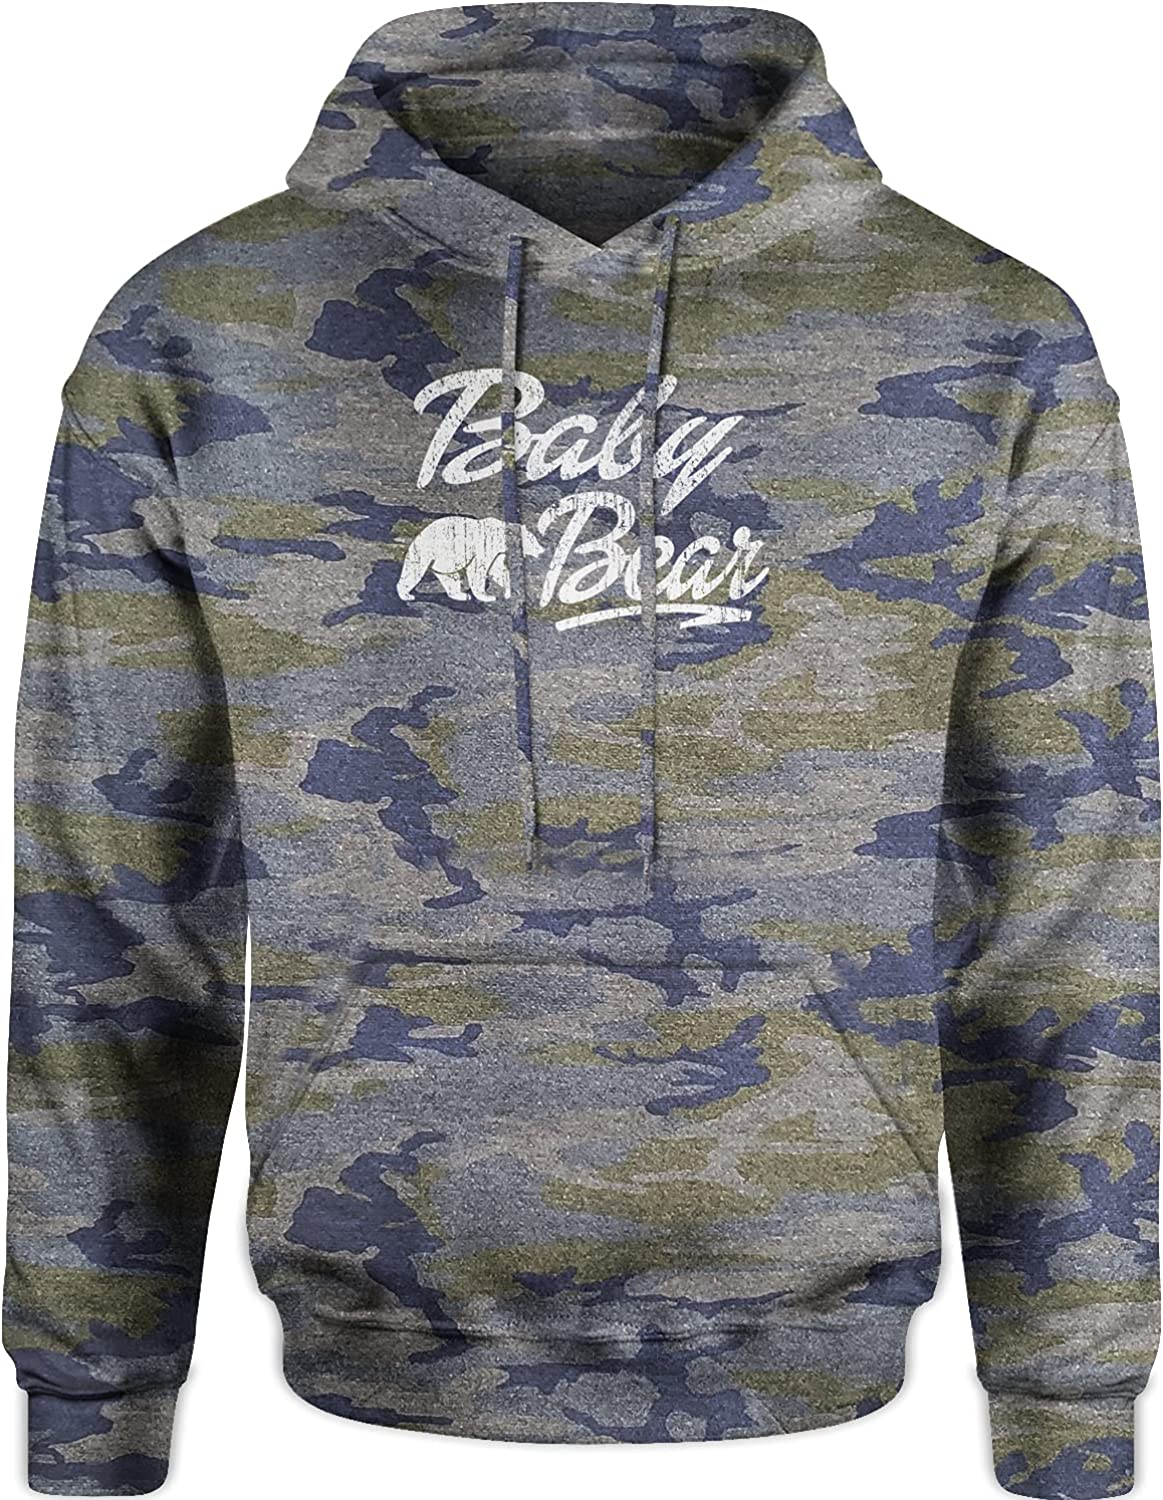 San Francisco Mall Expression Tees Baby Bear Cub List price Hoodie Adult Unisex